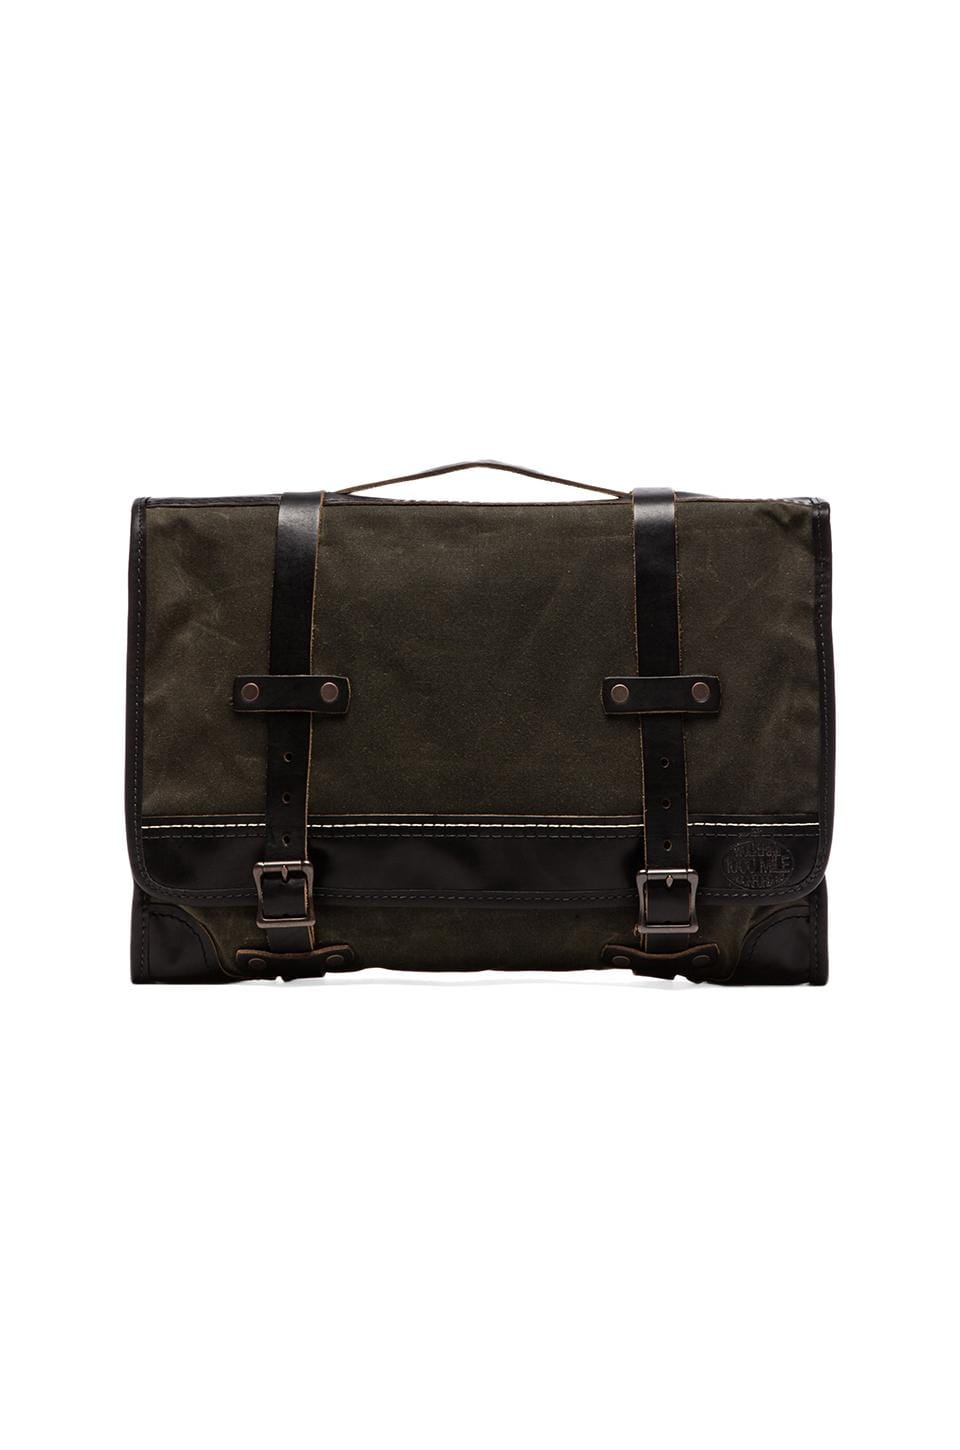 Wolverine The Messenger in Olive